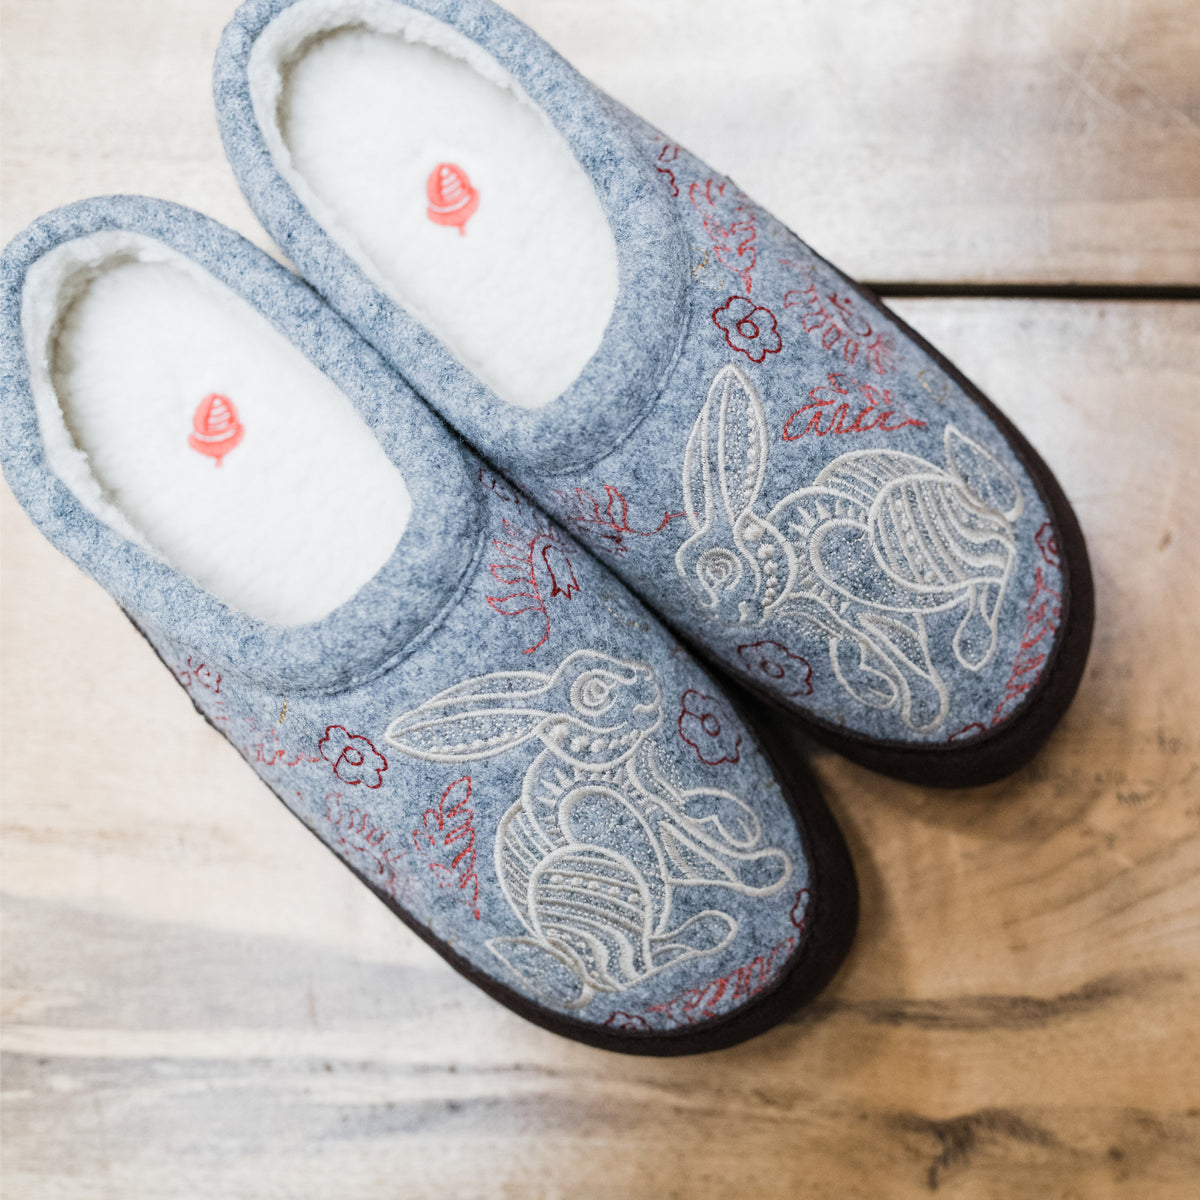 Women's Forest Mule Slippers in Heather Grey Hare Right Angled View sitting on wood table